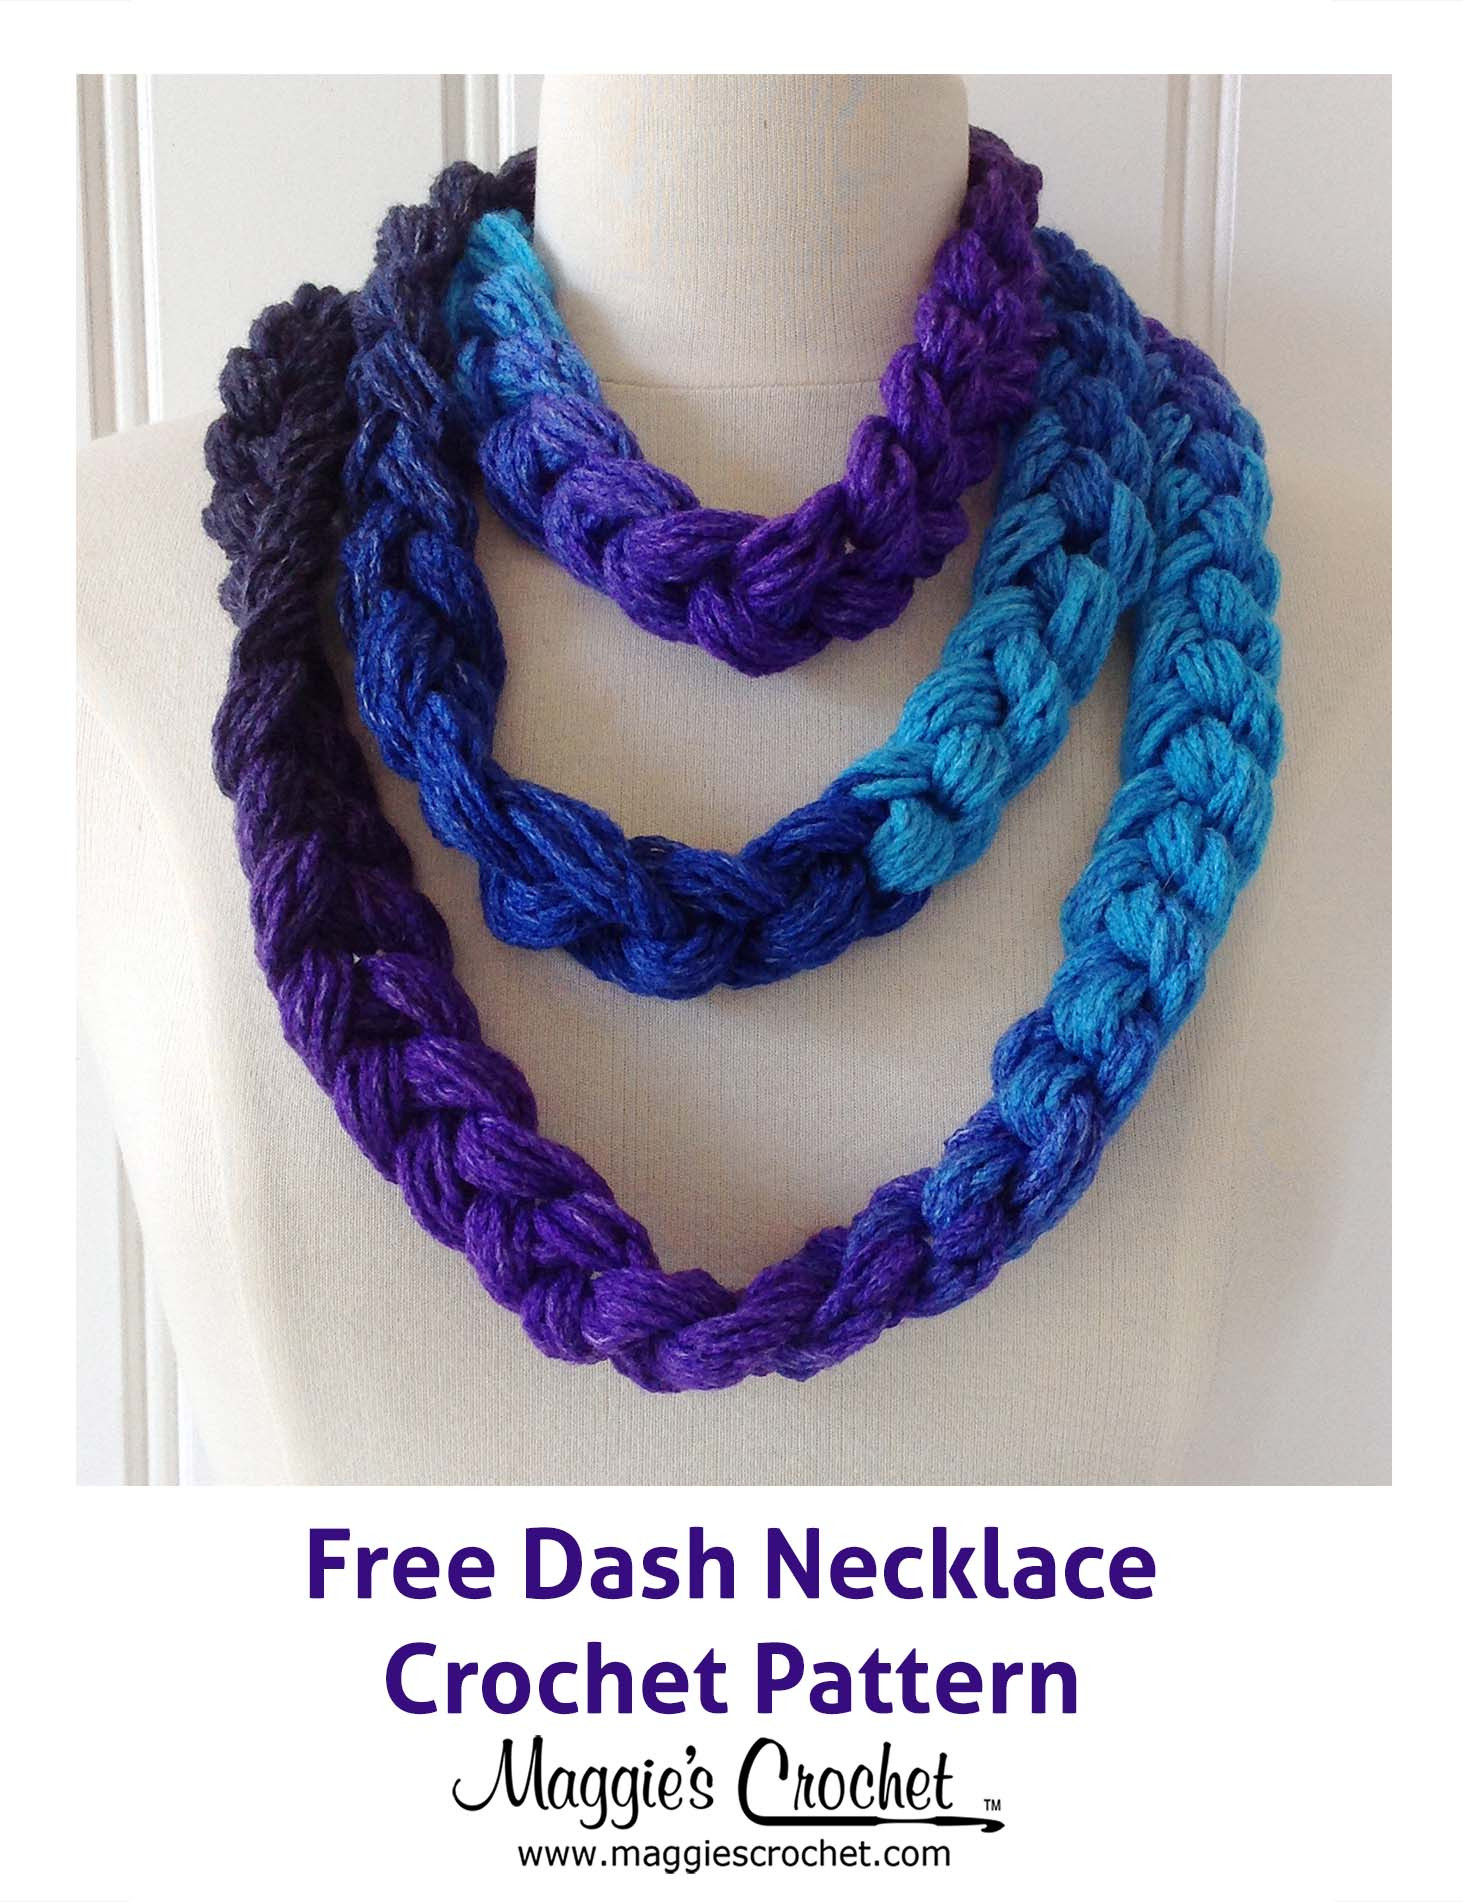 Crochet Necklace Chain Elegant Dash Chain Necklace Free Crochet Pattern Maggie S Of Charming 44 Ideas Crochet Necklace Chain